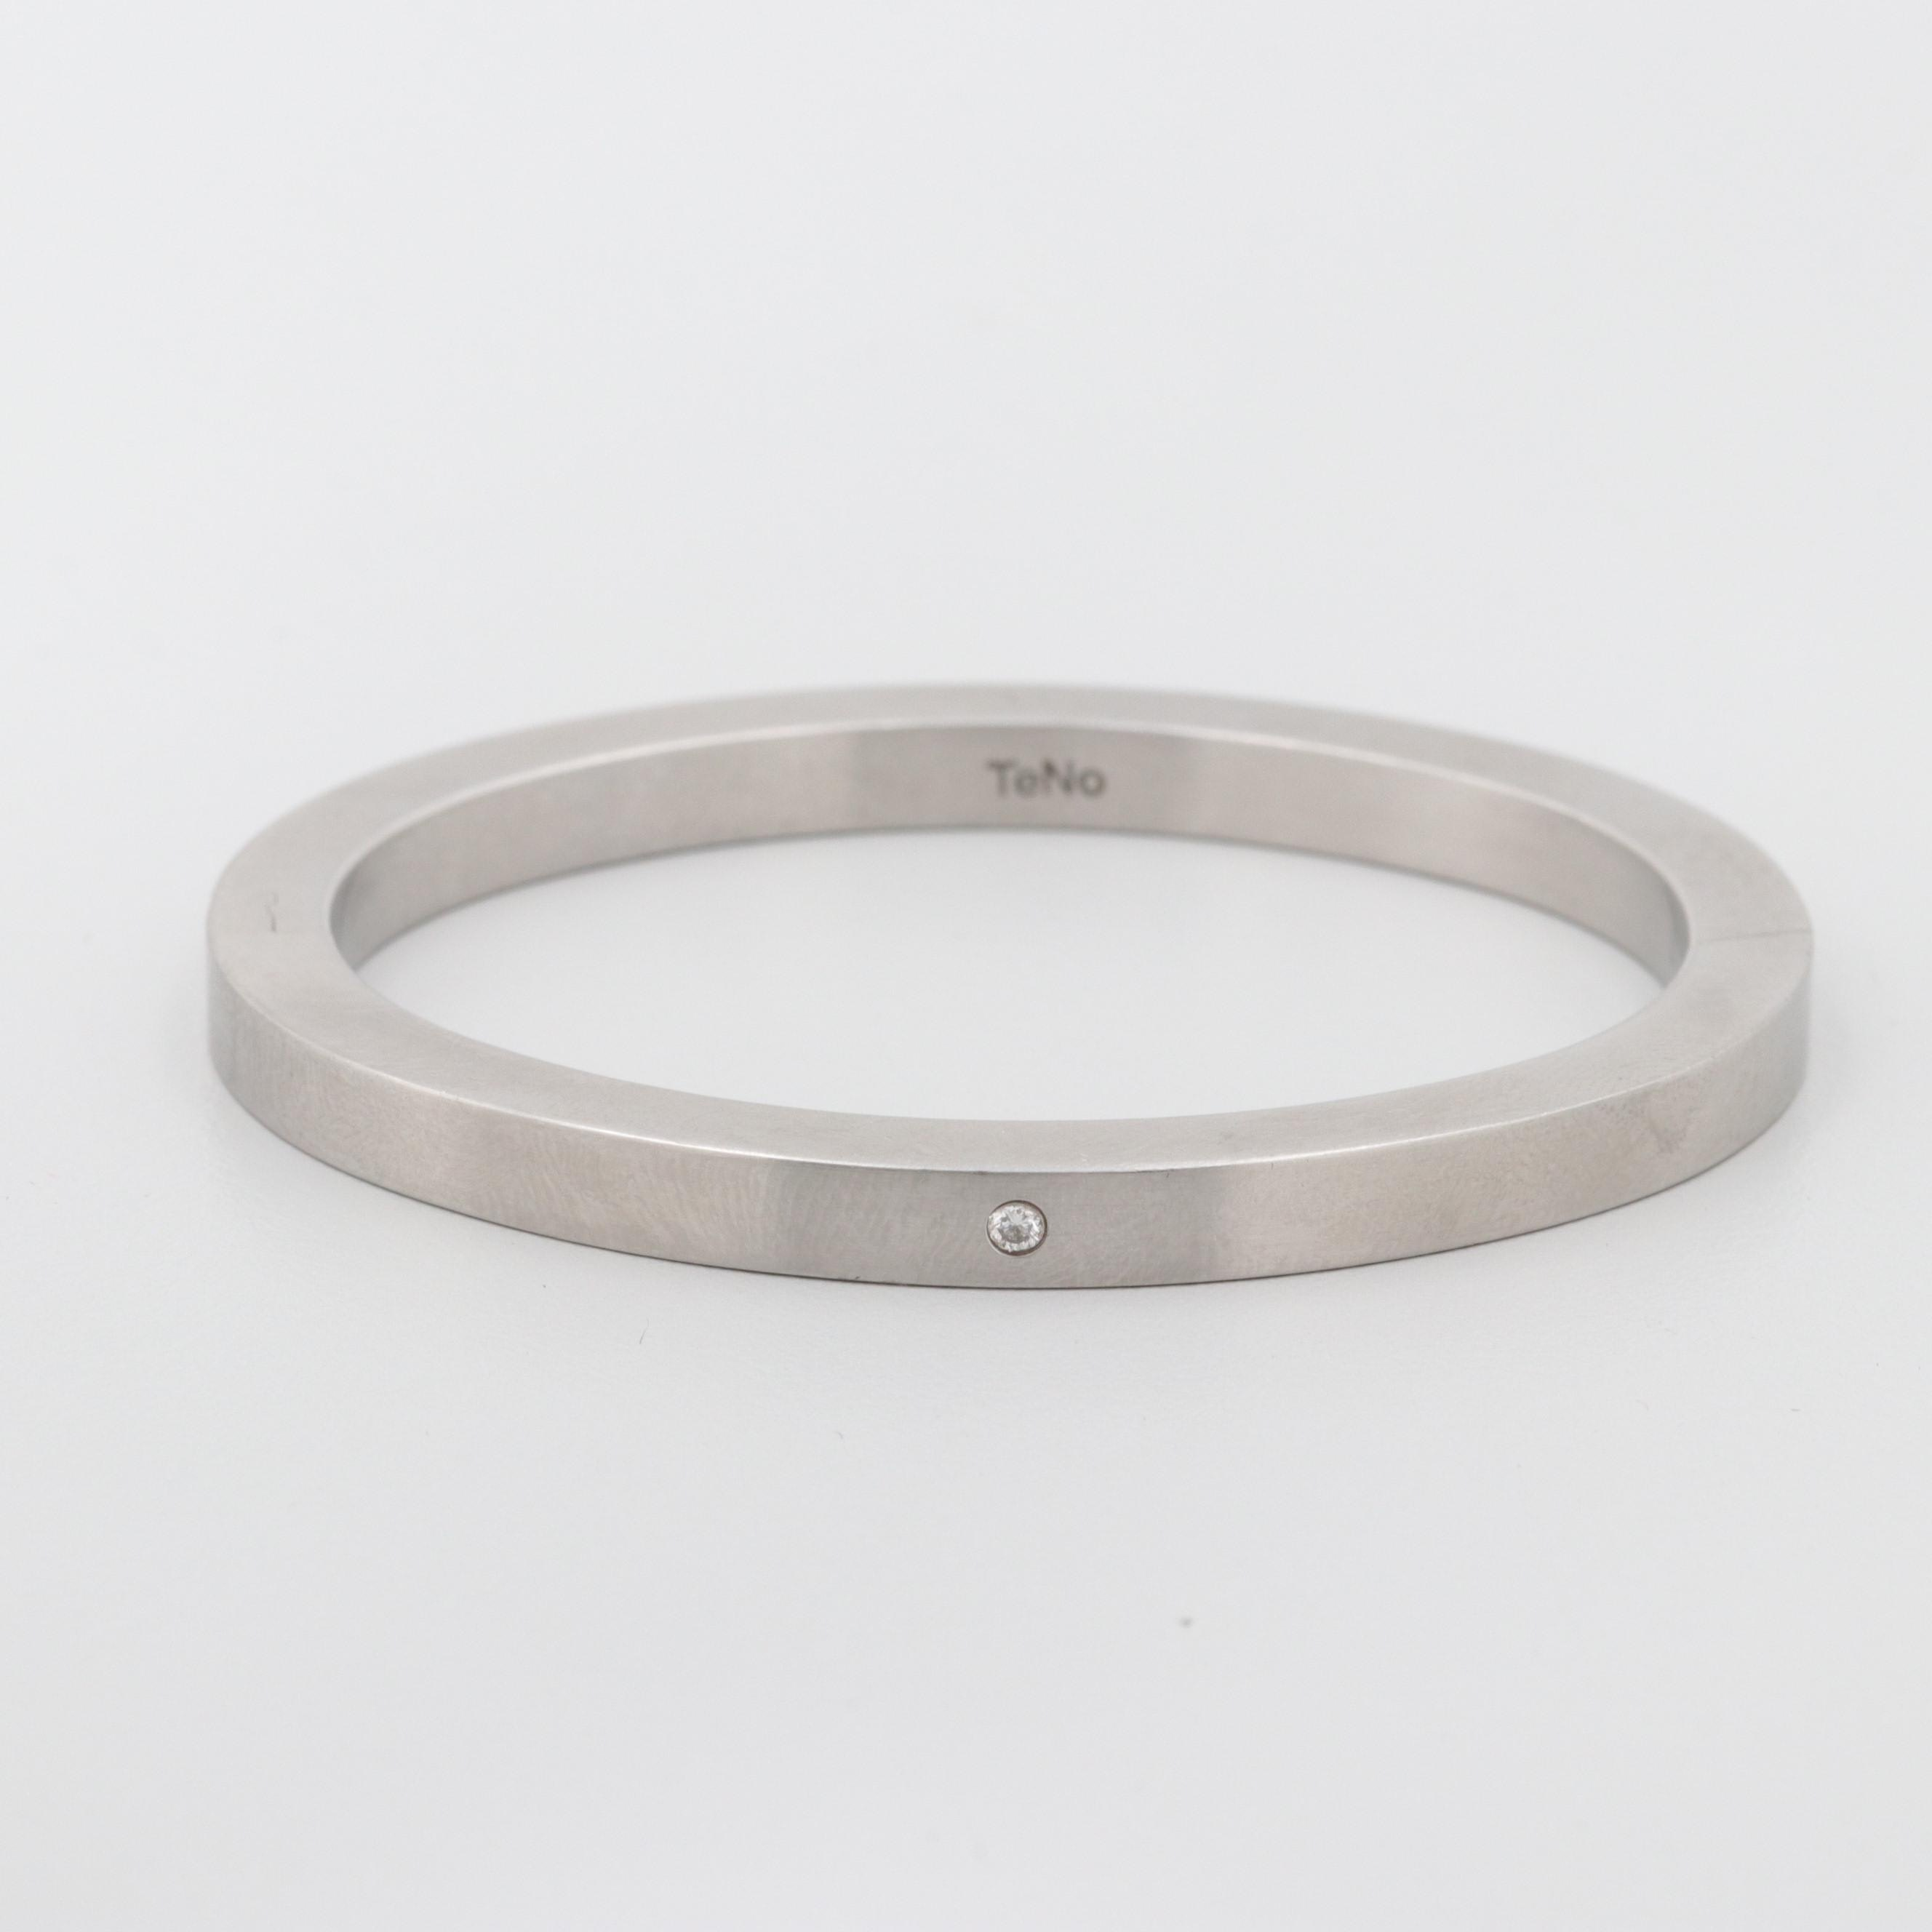 TeNo Stainless Steel Hinged Bangle with Diamond Accent